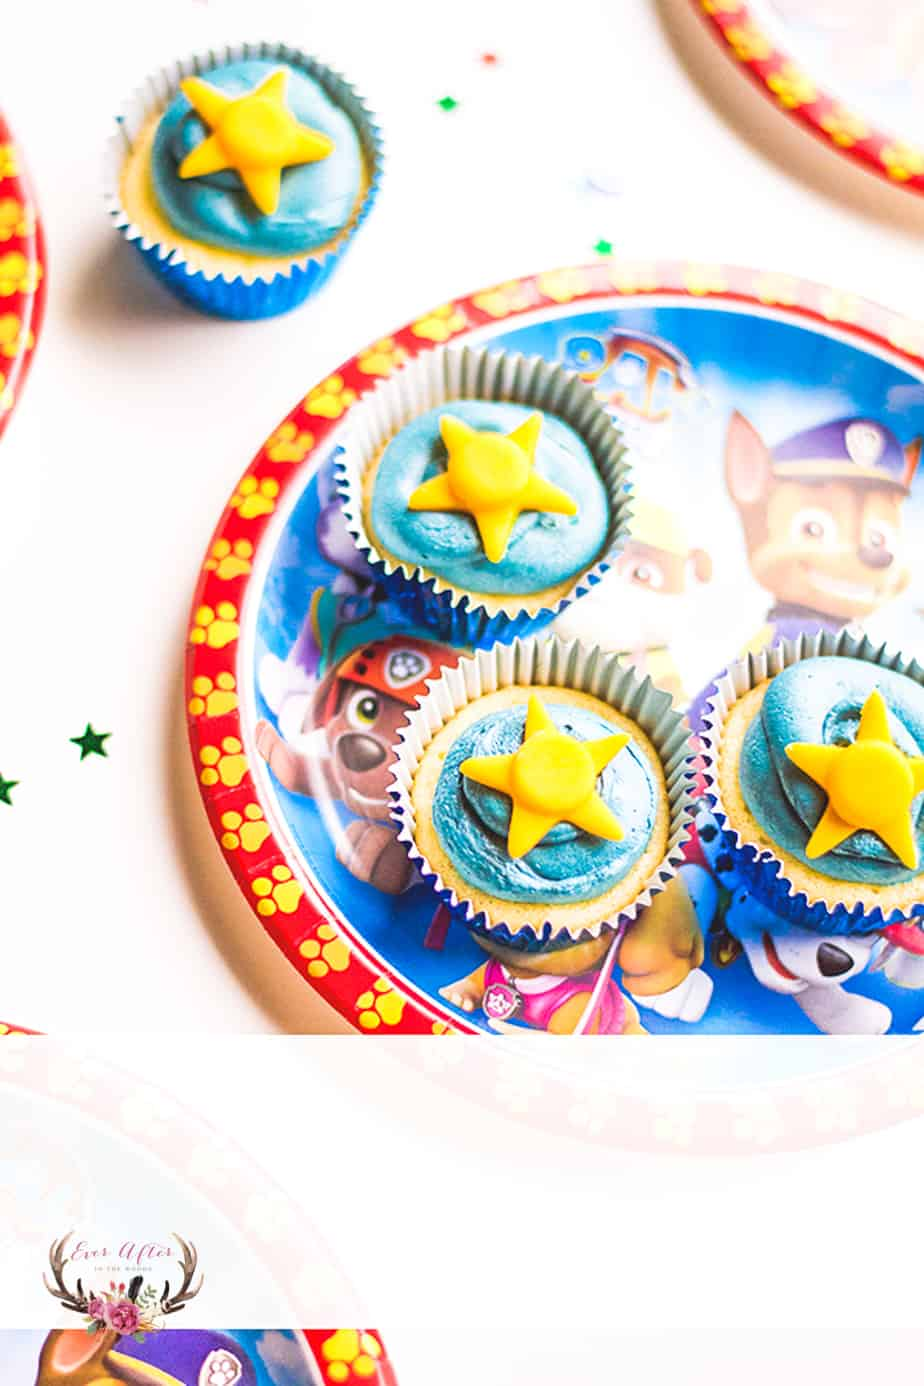 If you have a toddler, these Paw Patrol Cupcakes are exactly what you need to make the everyday special.